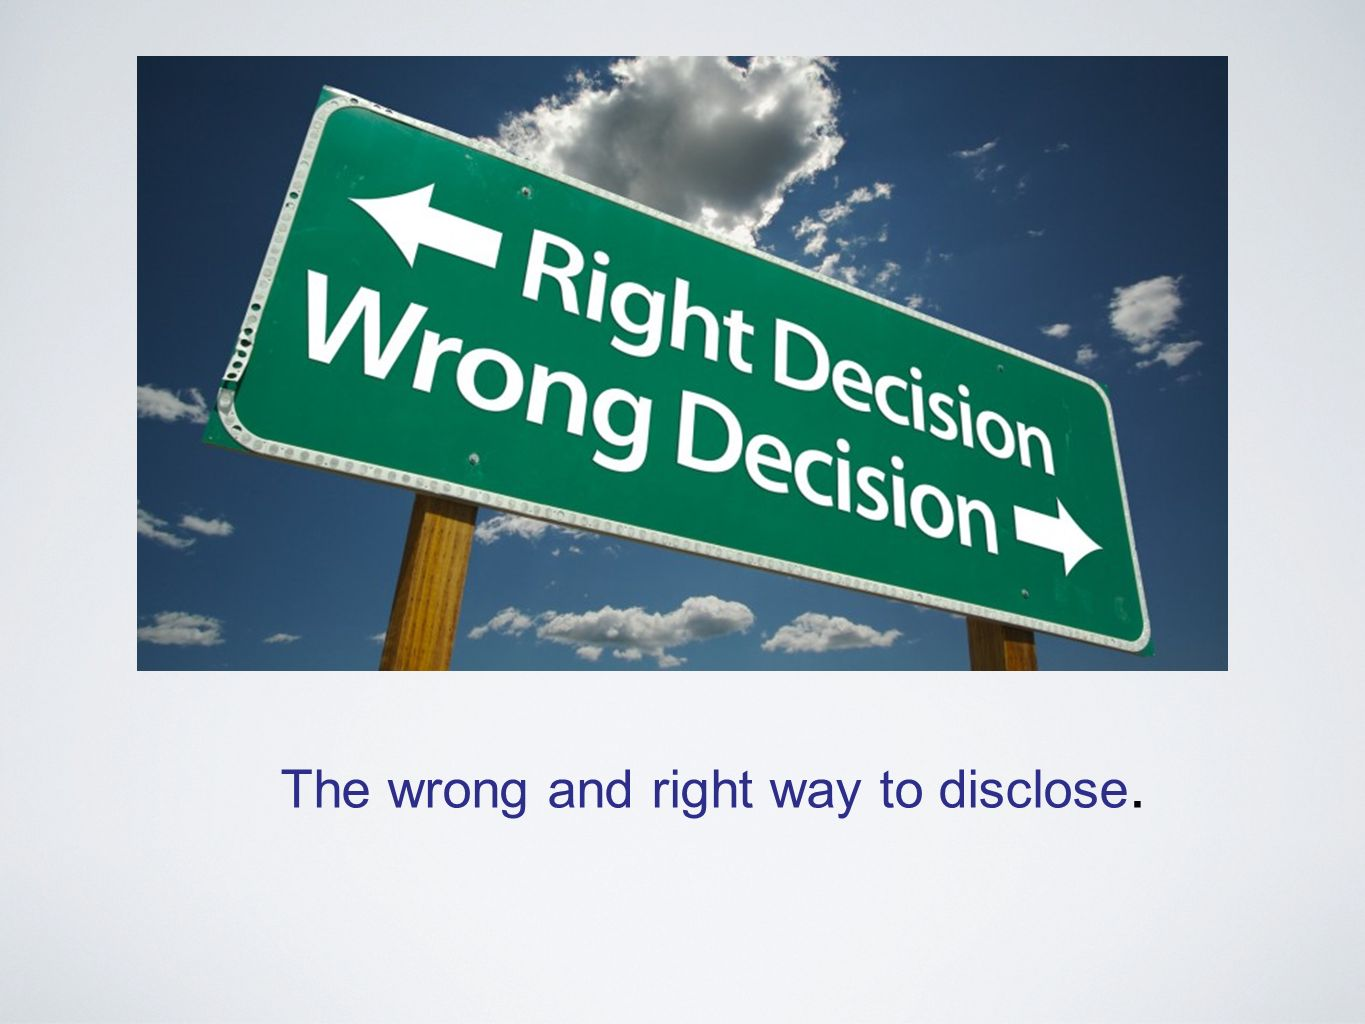 The wrong and right way to disclose.